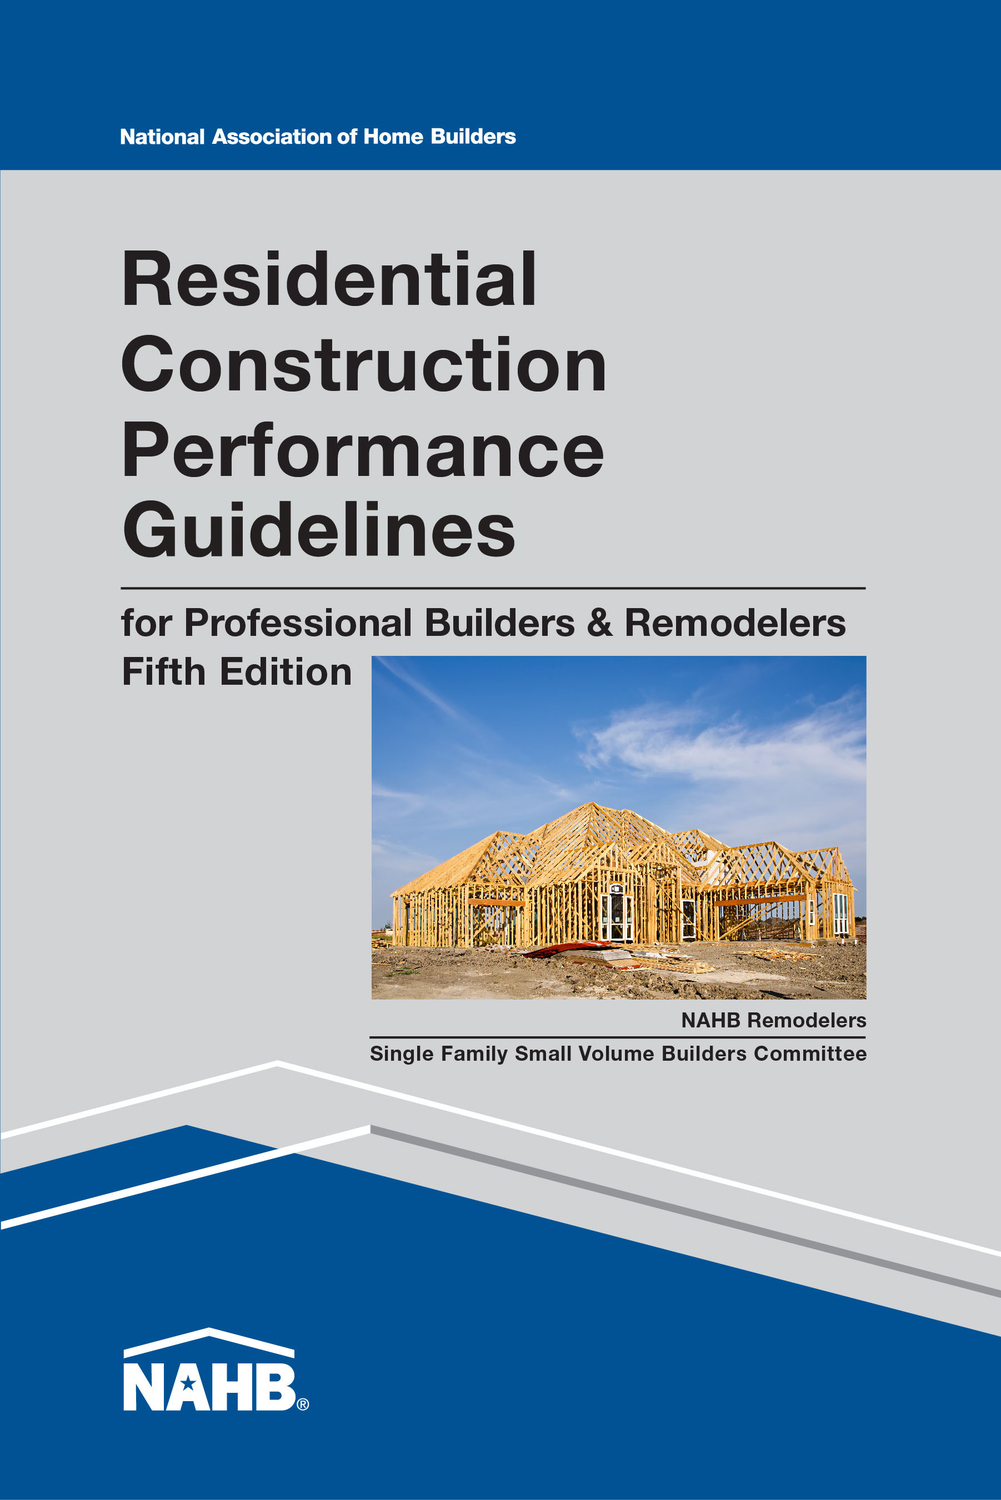 Residential Construction Performance Guidelines, Contractor Reference - 100 copies